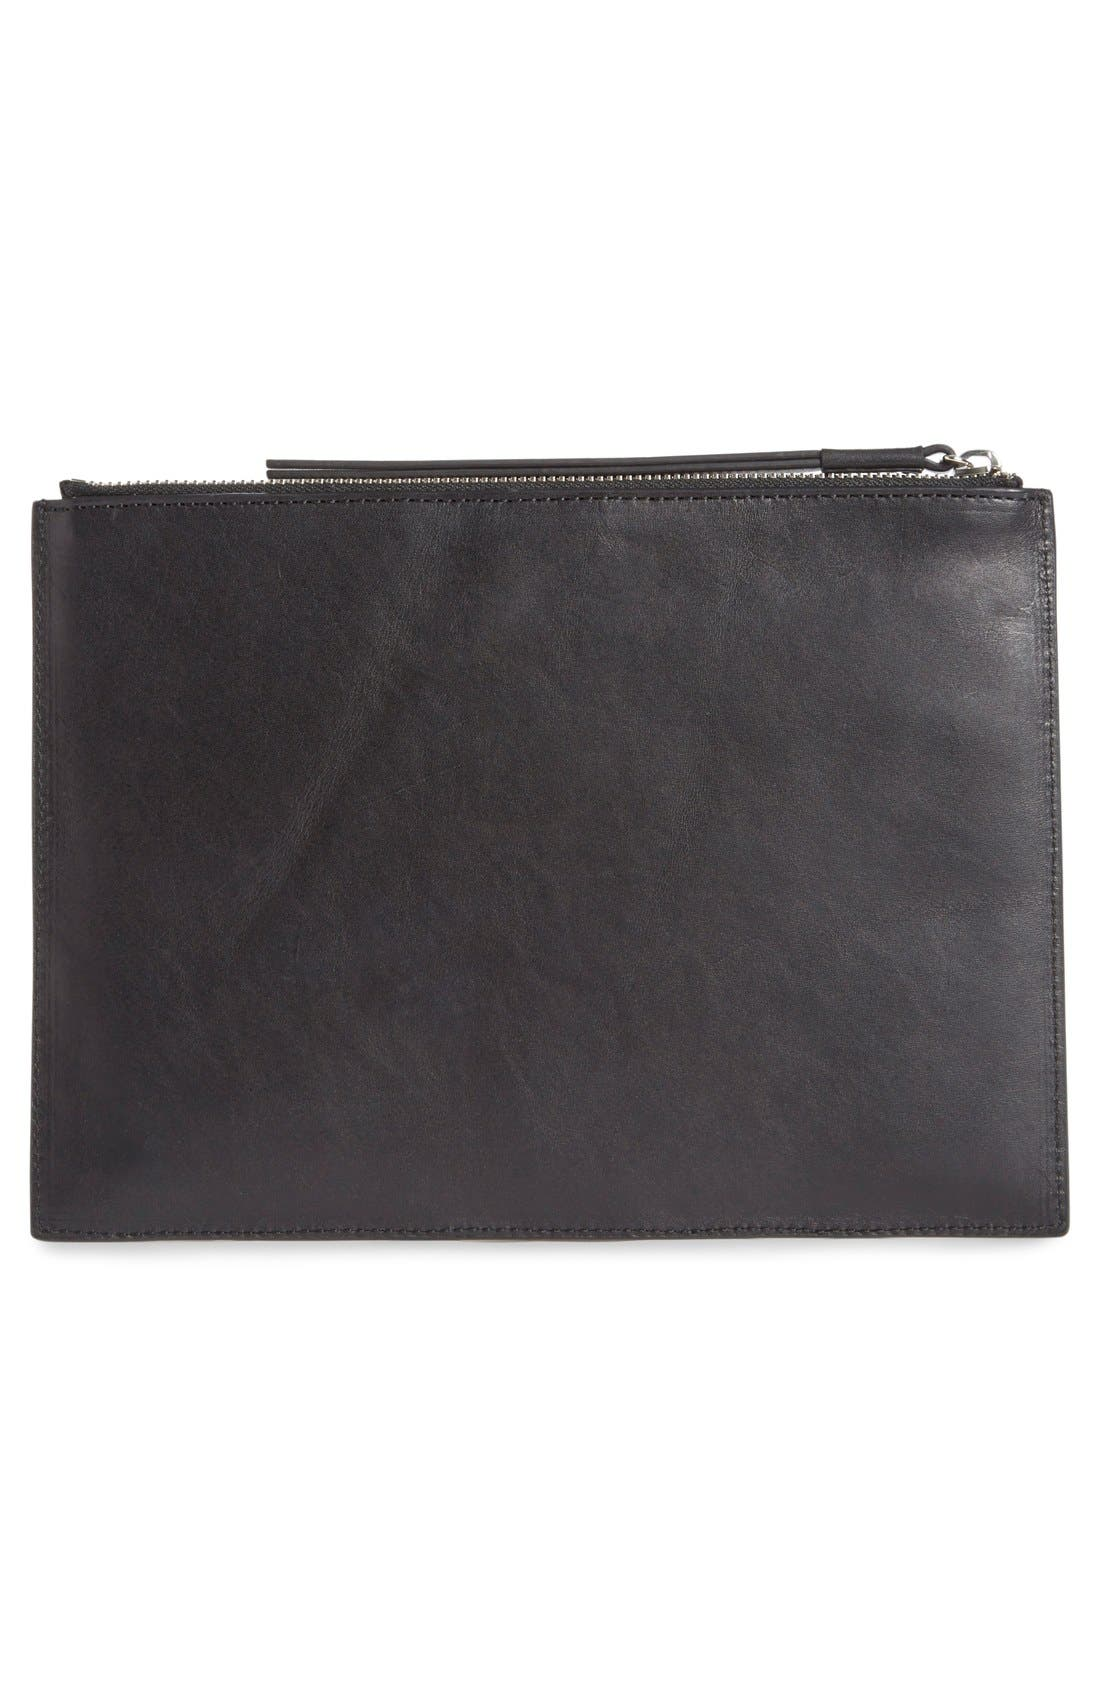 Flat Leather Pouch,                             Alternate thumbnail 3, color,                             001